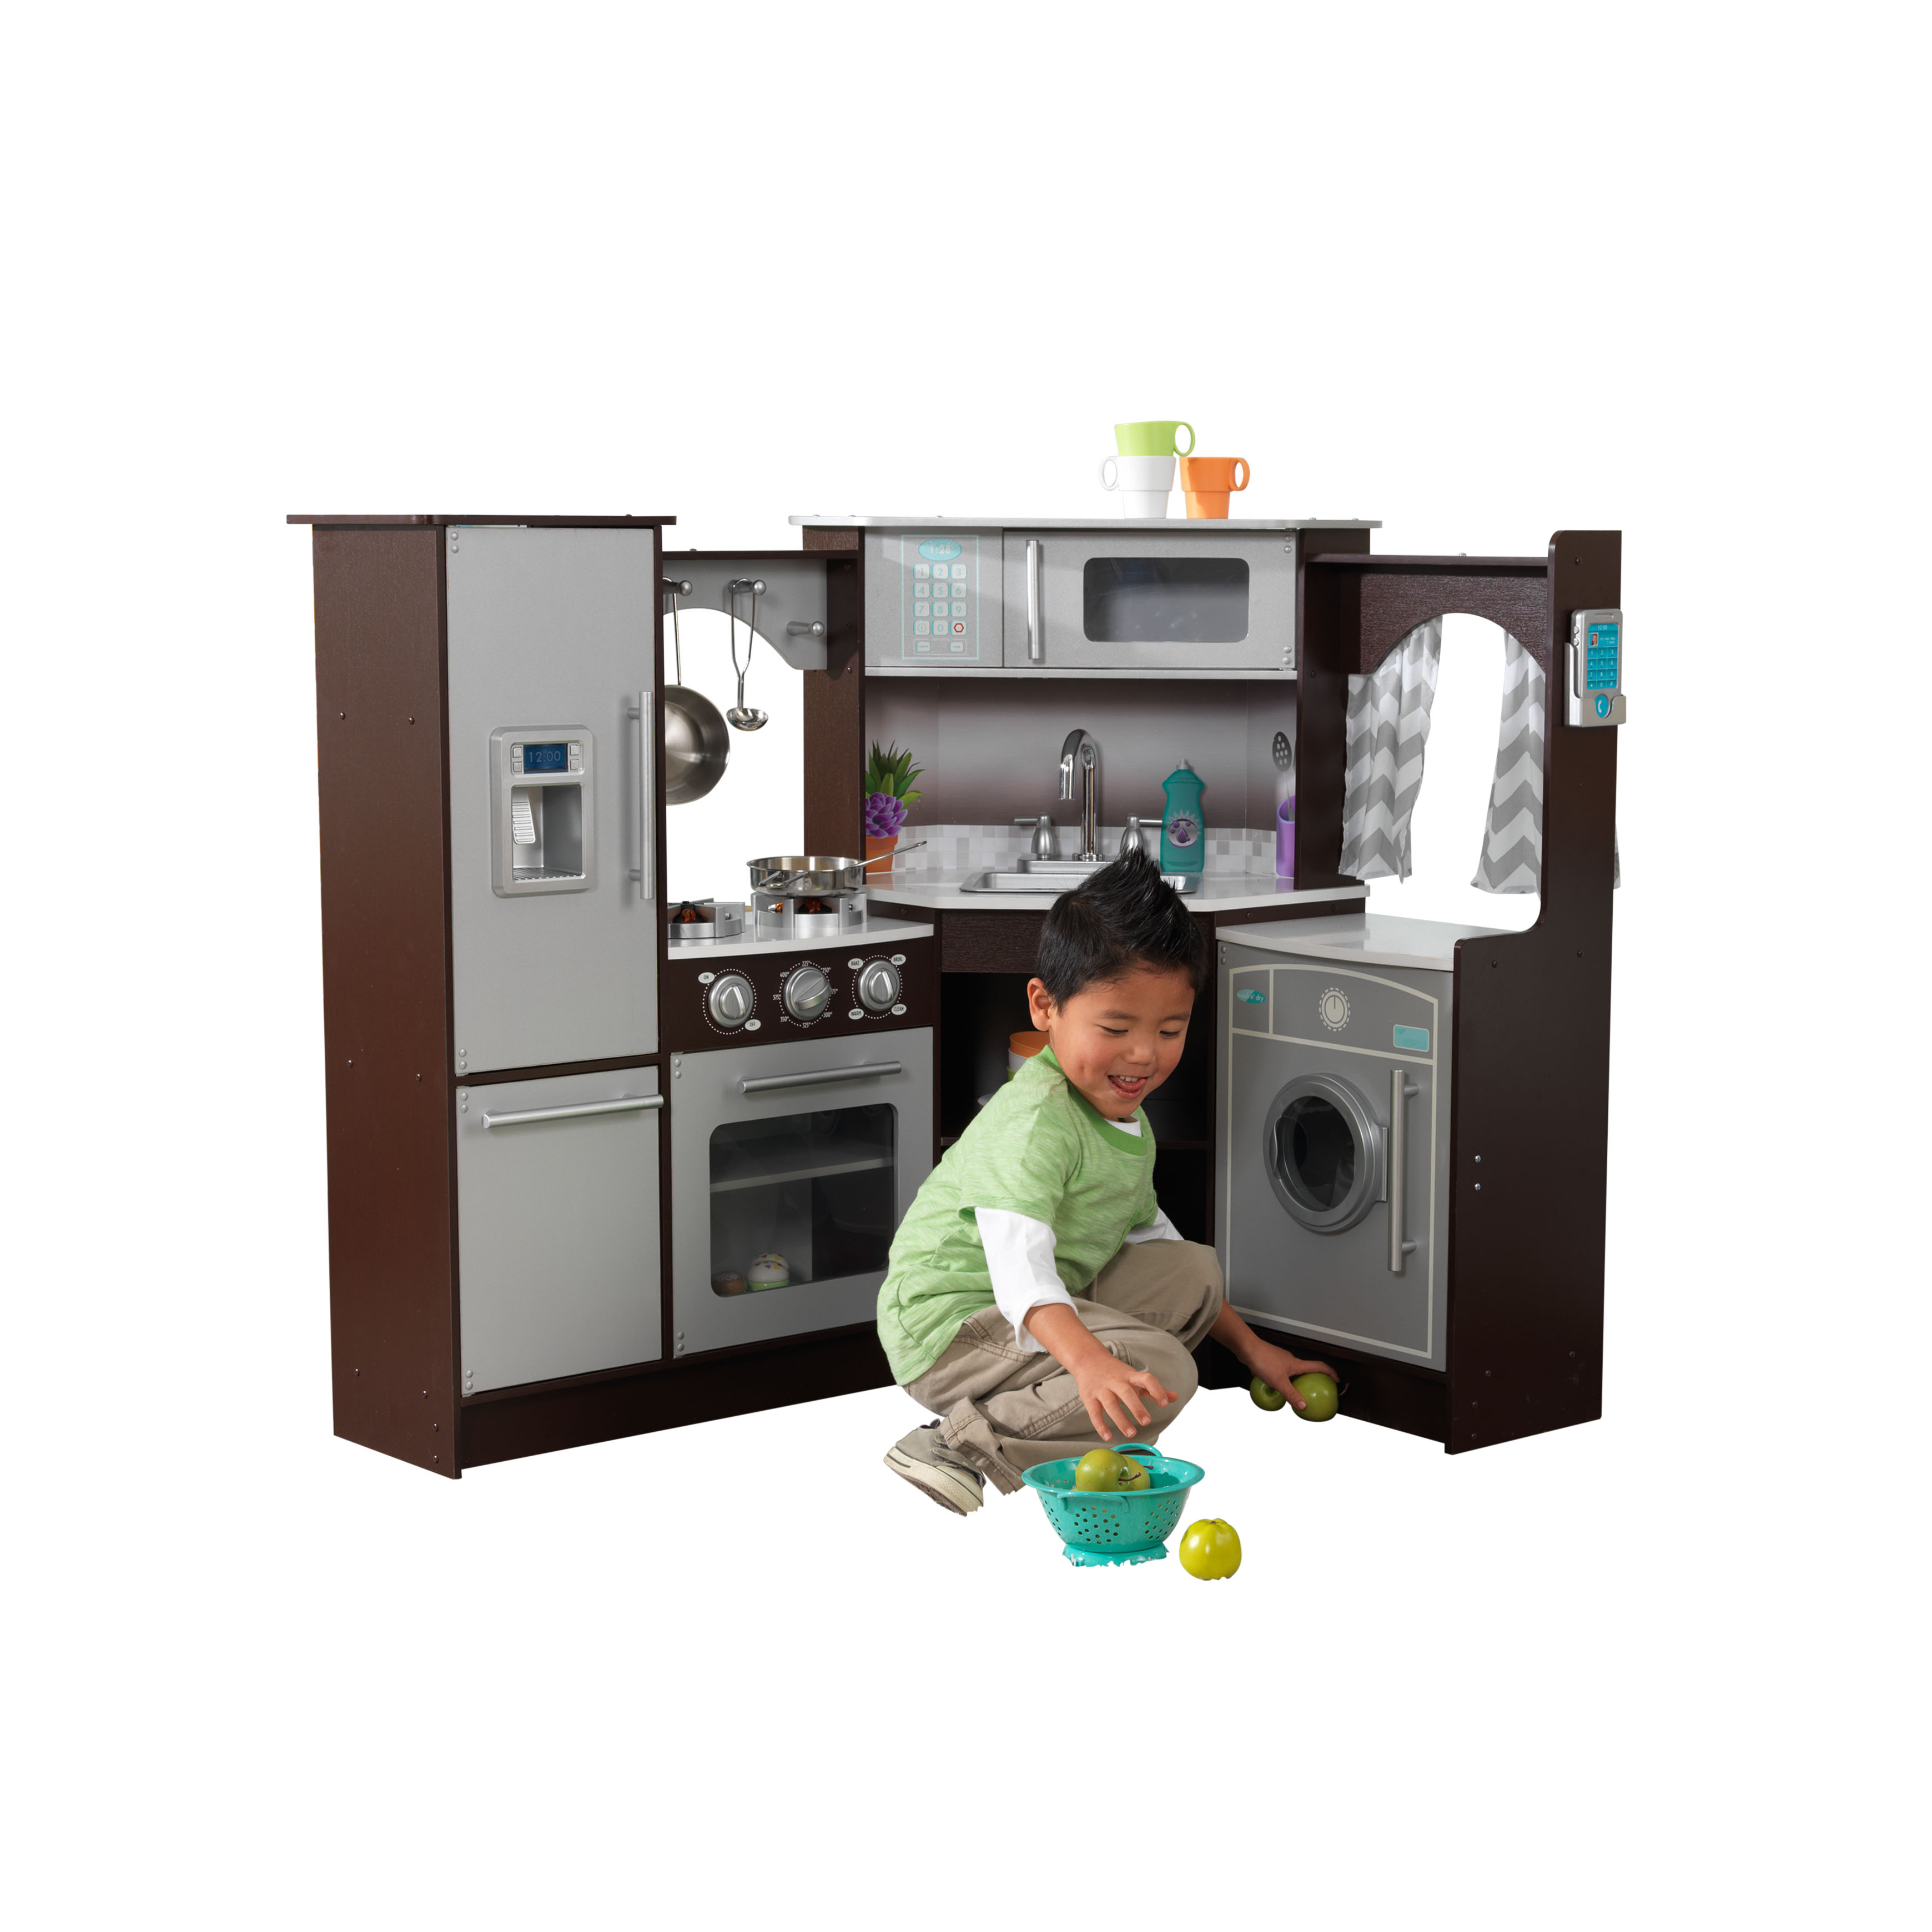 KidKraft Ultimate Corner Play Kitchen with Lights & Sounds - Espresso